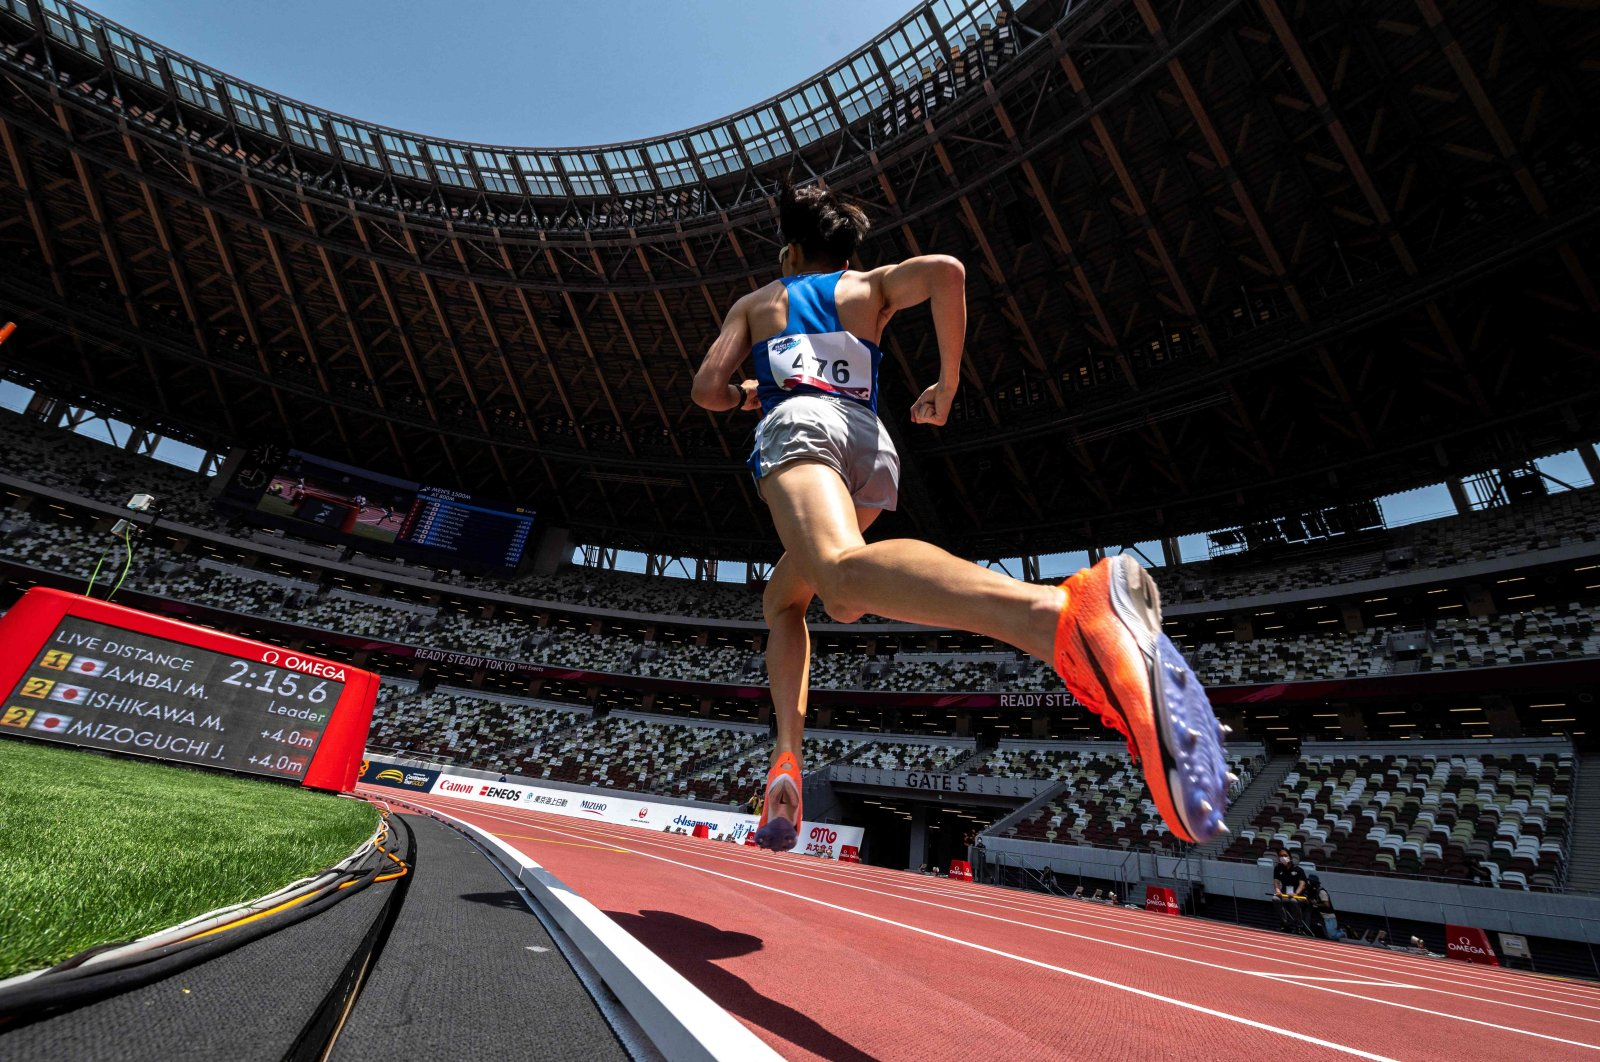 An athlete competes in the 800-meter test event for the 2020 Tokyo Olympics, in the National Stadium in Tokyo, Japan, May 9, 2021. (AFP Photo)